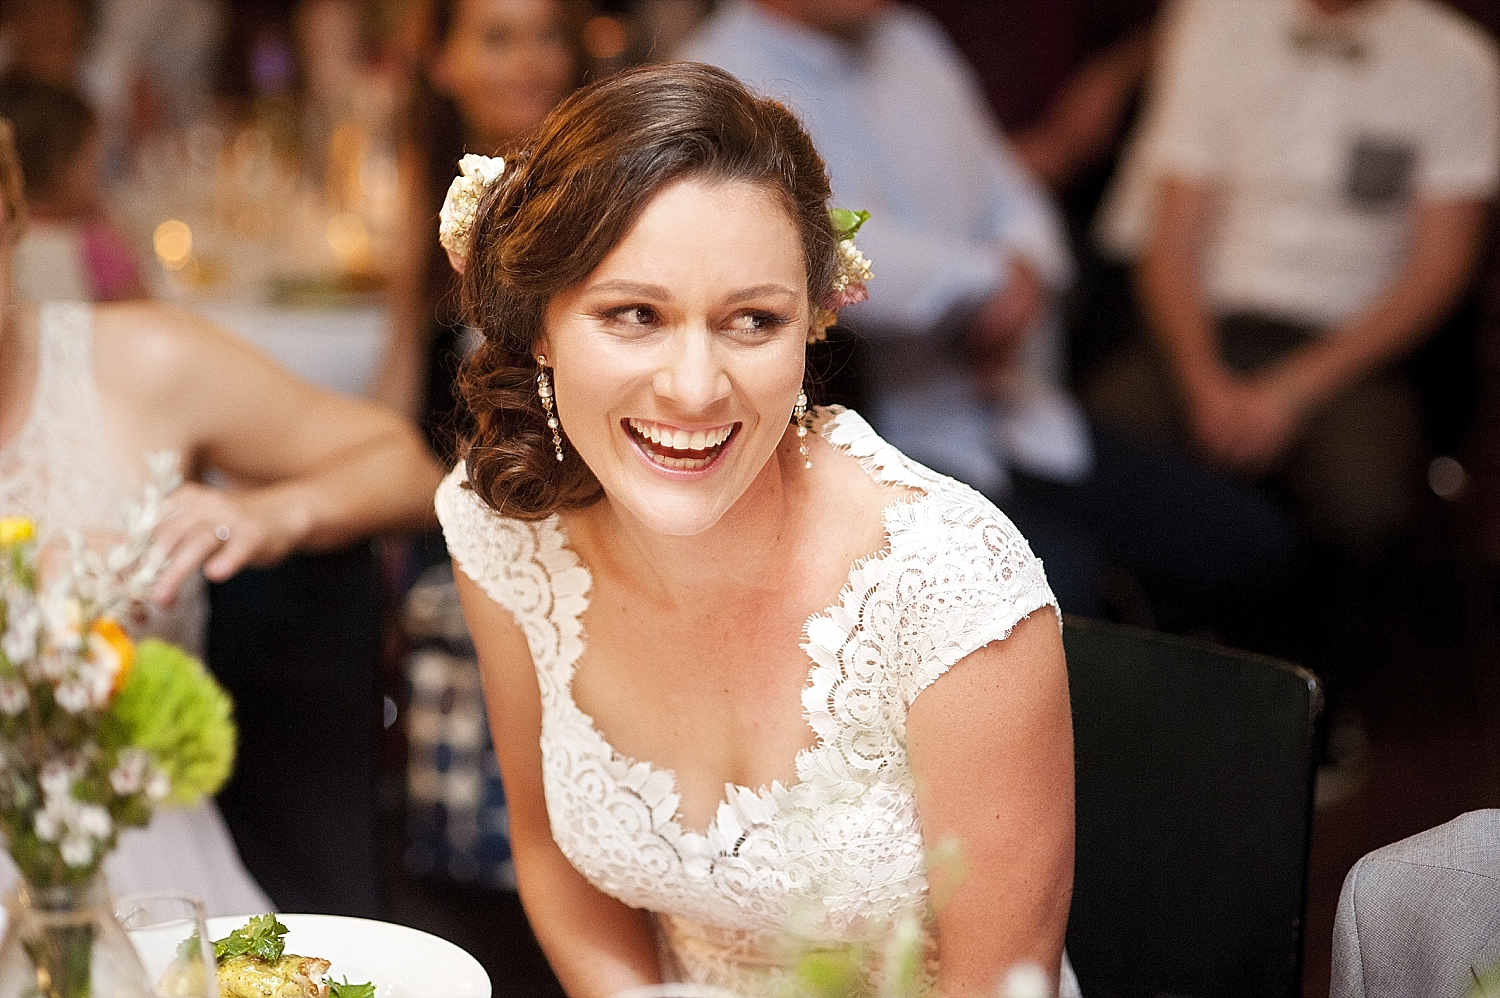 84 relaxed wedding photography perth 100.jpg